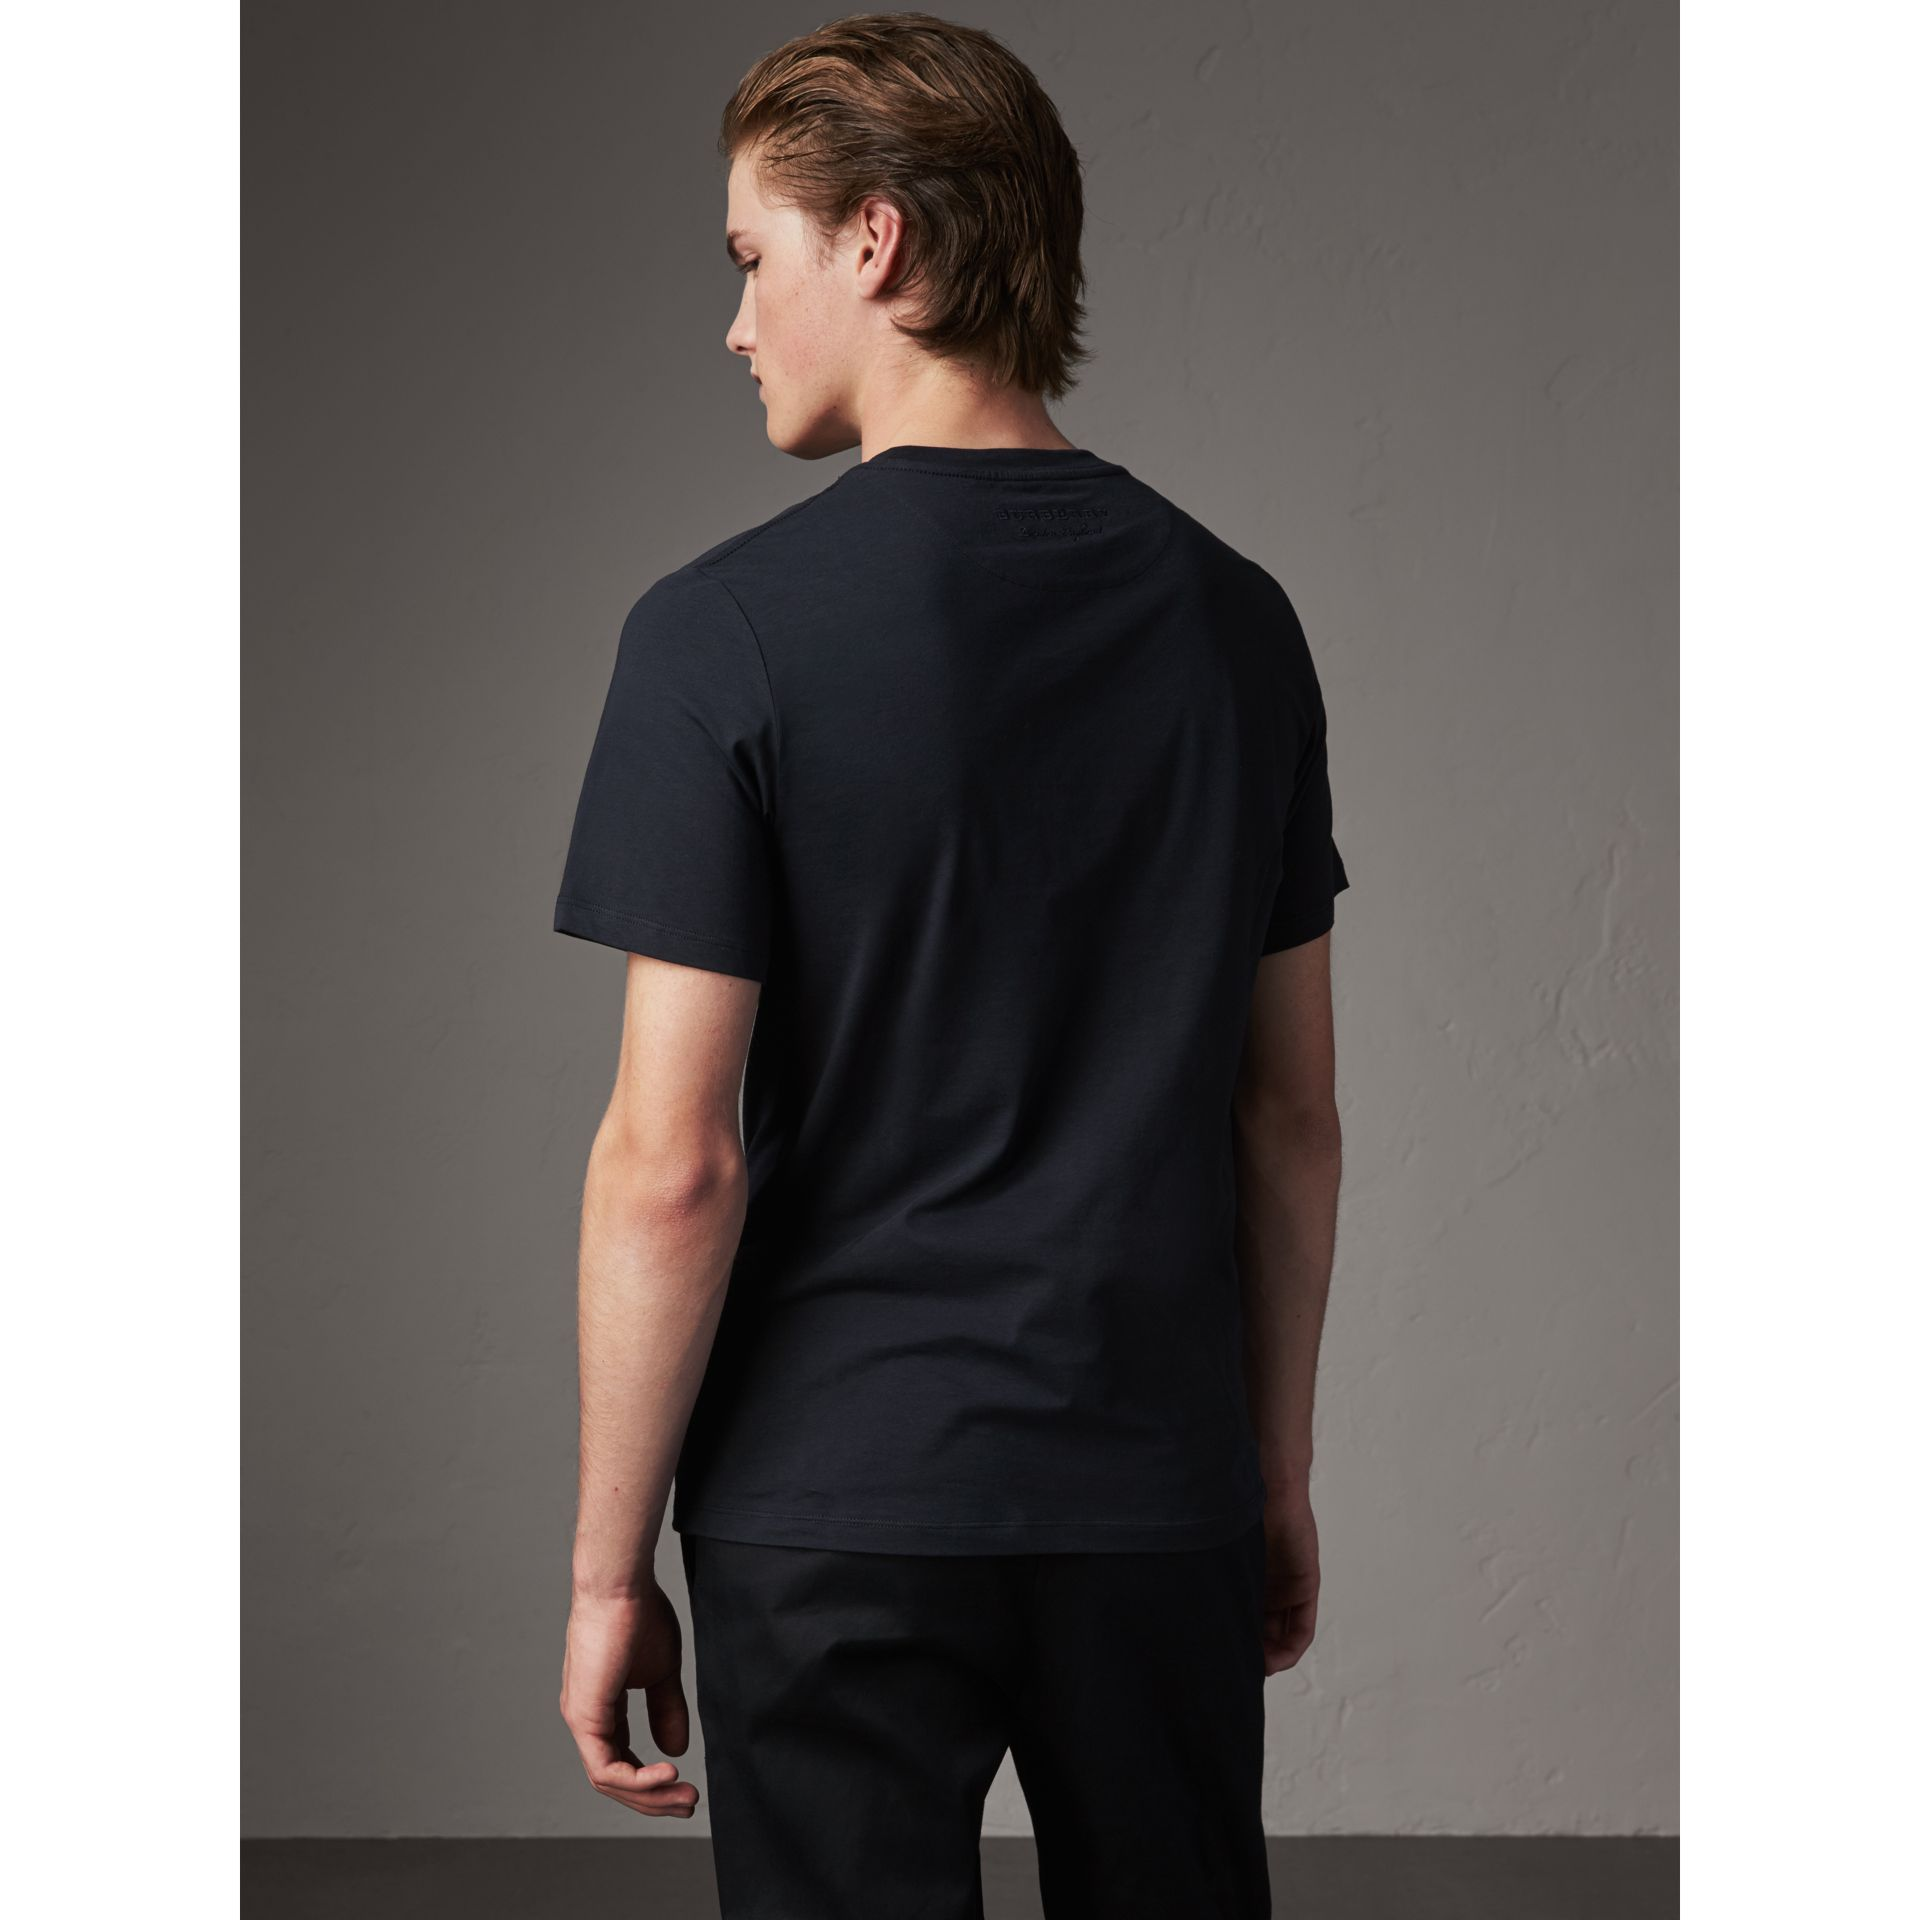 Sketch Appliqué Cotton T-shirt in Navy - Men | Burberry United Kingdom - gallery image 3